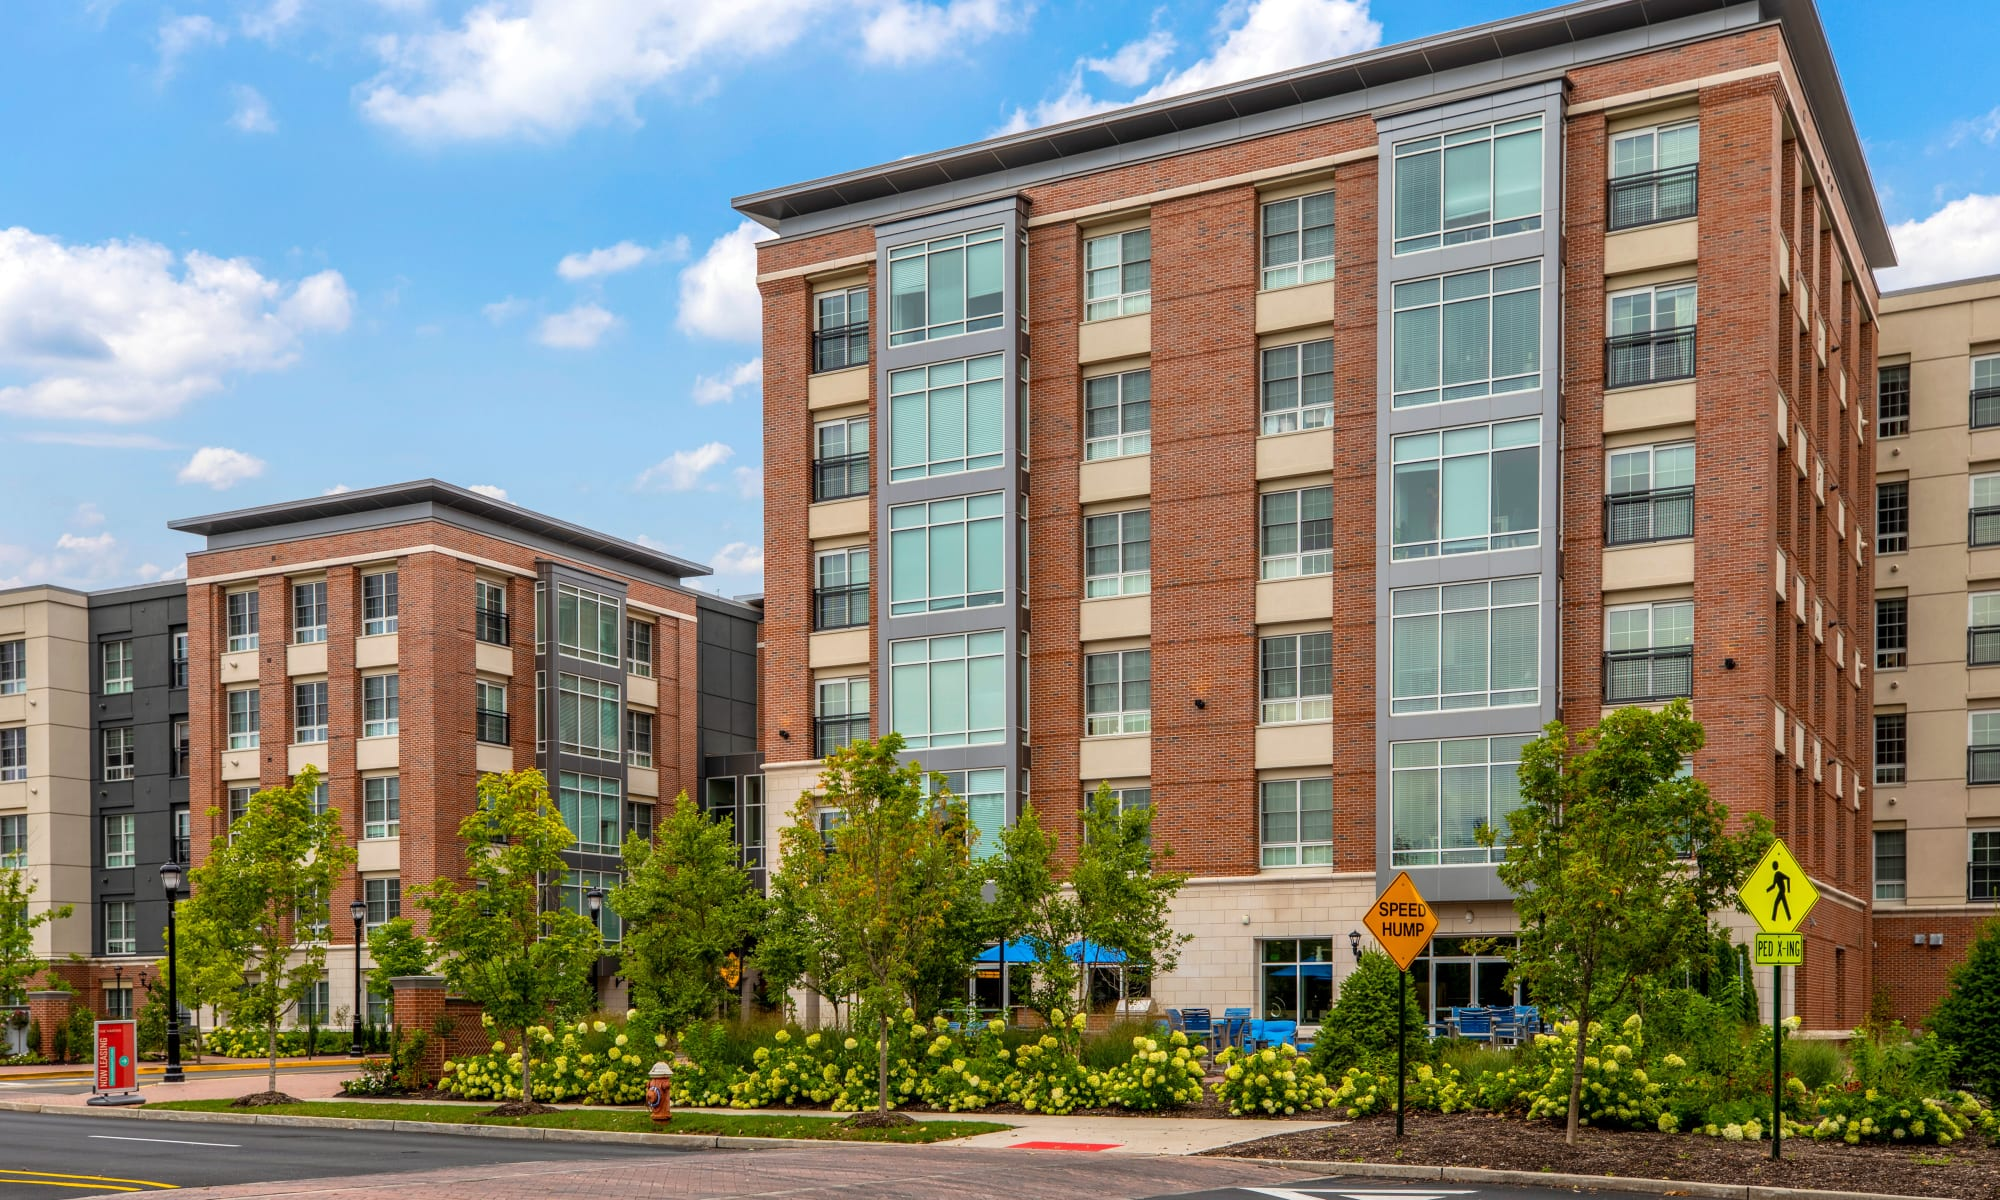 Exterior shot of The Harper at Harmon Meadow in Secaucus, New Jersey